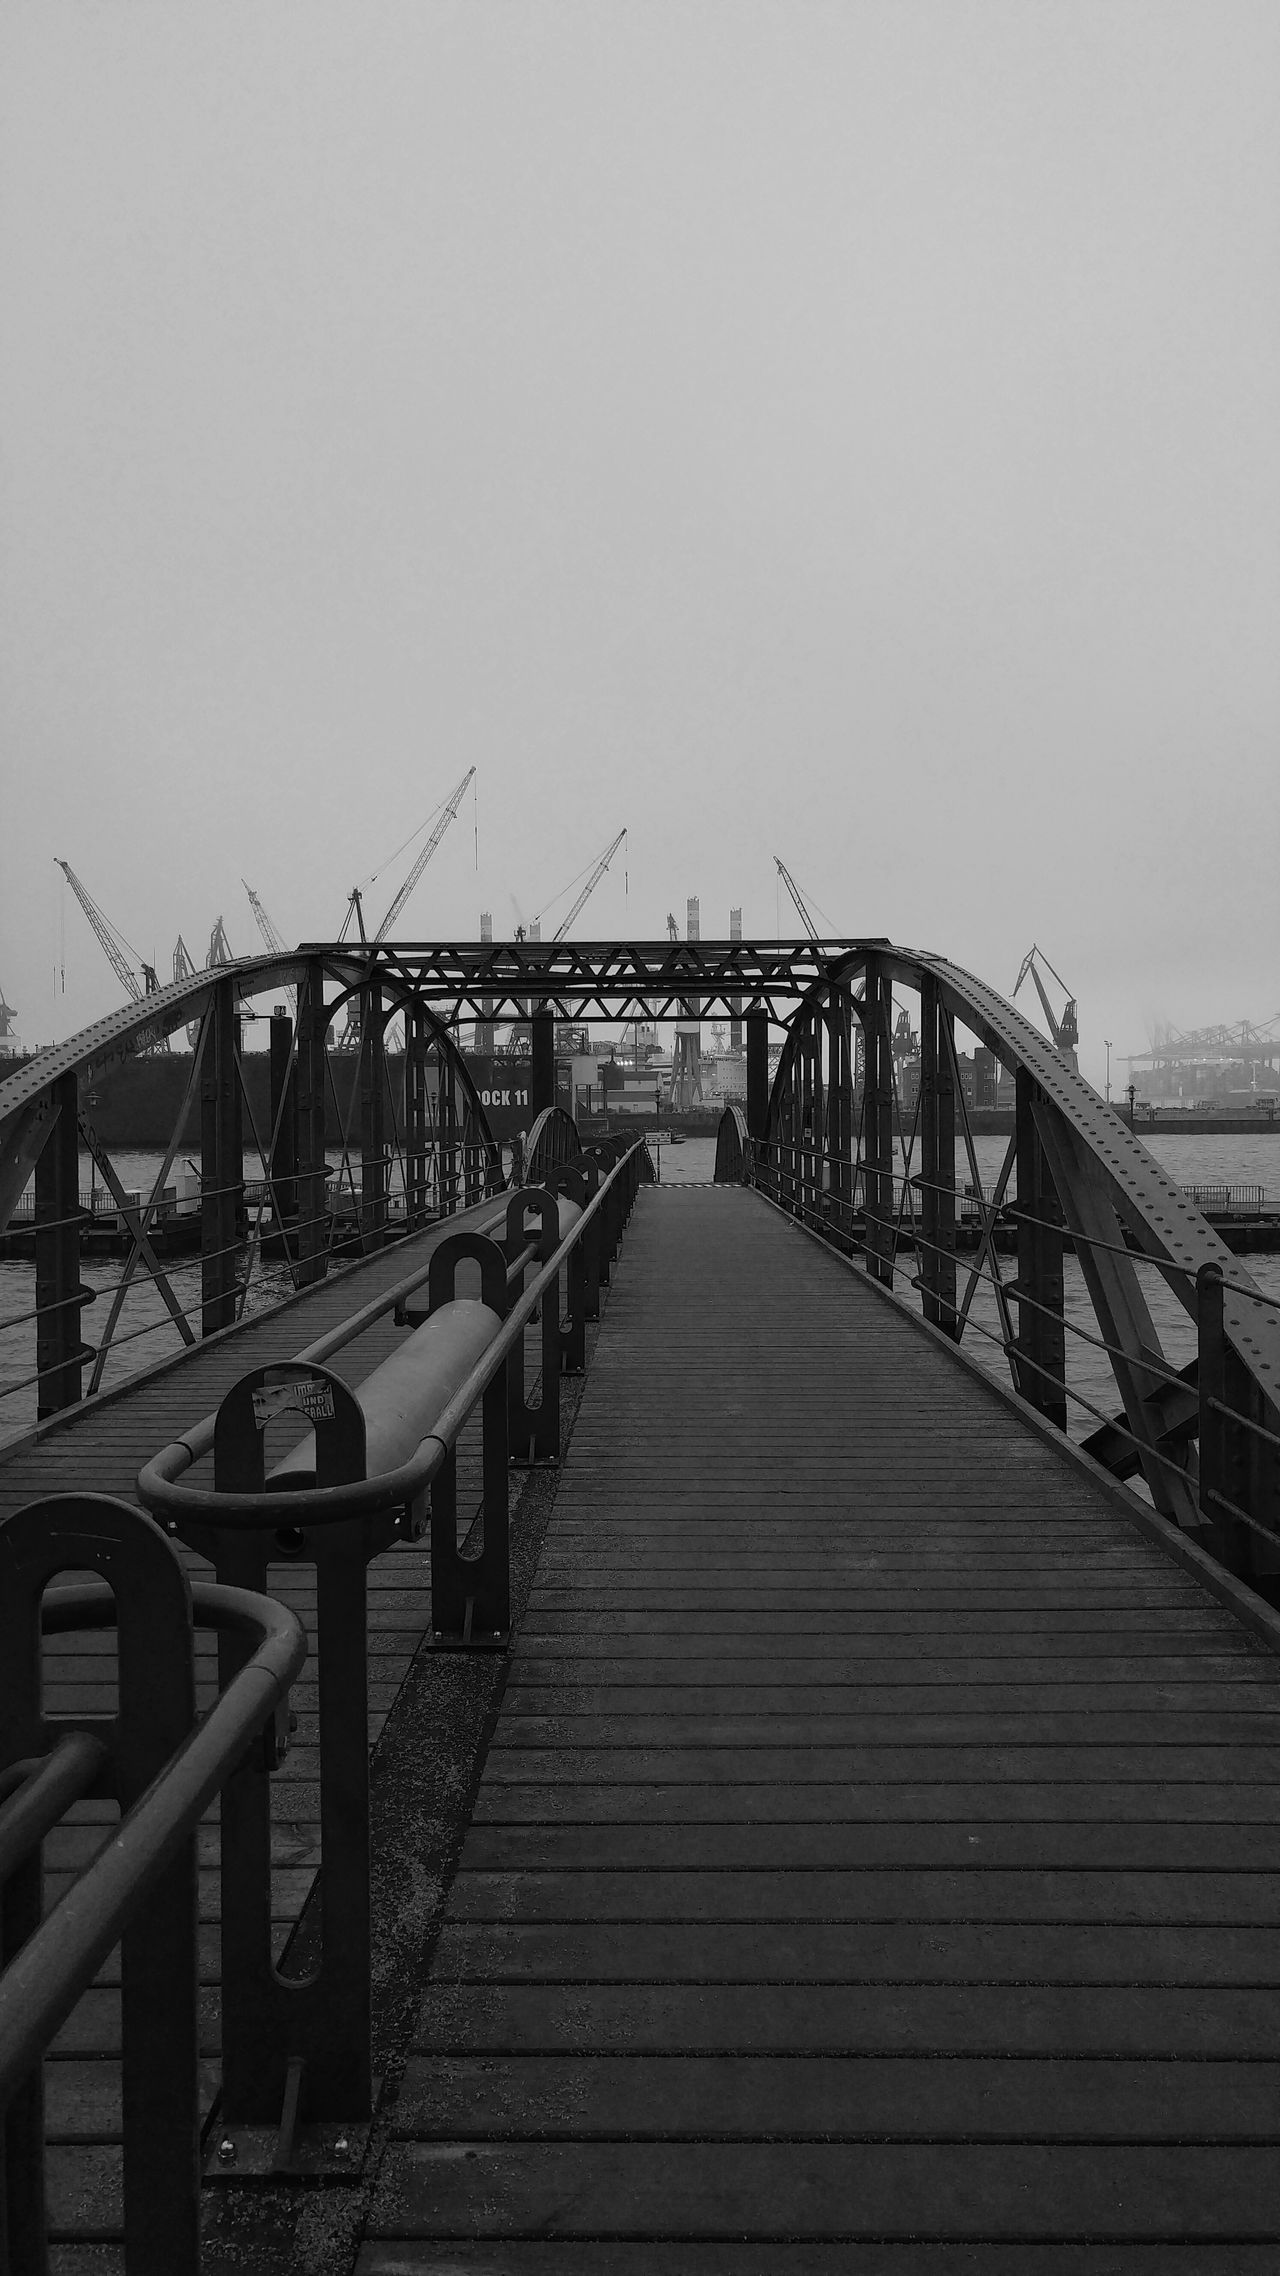 Into the water Bridge - Man Made Structure Outdoors Steps And Staircases Elevated Walkway No People City Travel Photography Outdoor Photography Cityscape Urban Exploration From My Point Of View Eyeem4photography Harbour View Day Fog Walking At The River Looking At Things Miles Away Vanishing Point EyeEm Best Shots - Black + White Blackandwhitephotography Monochrome Photography Monochrome